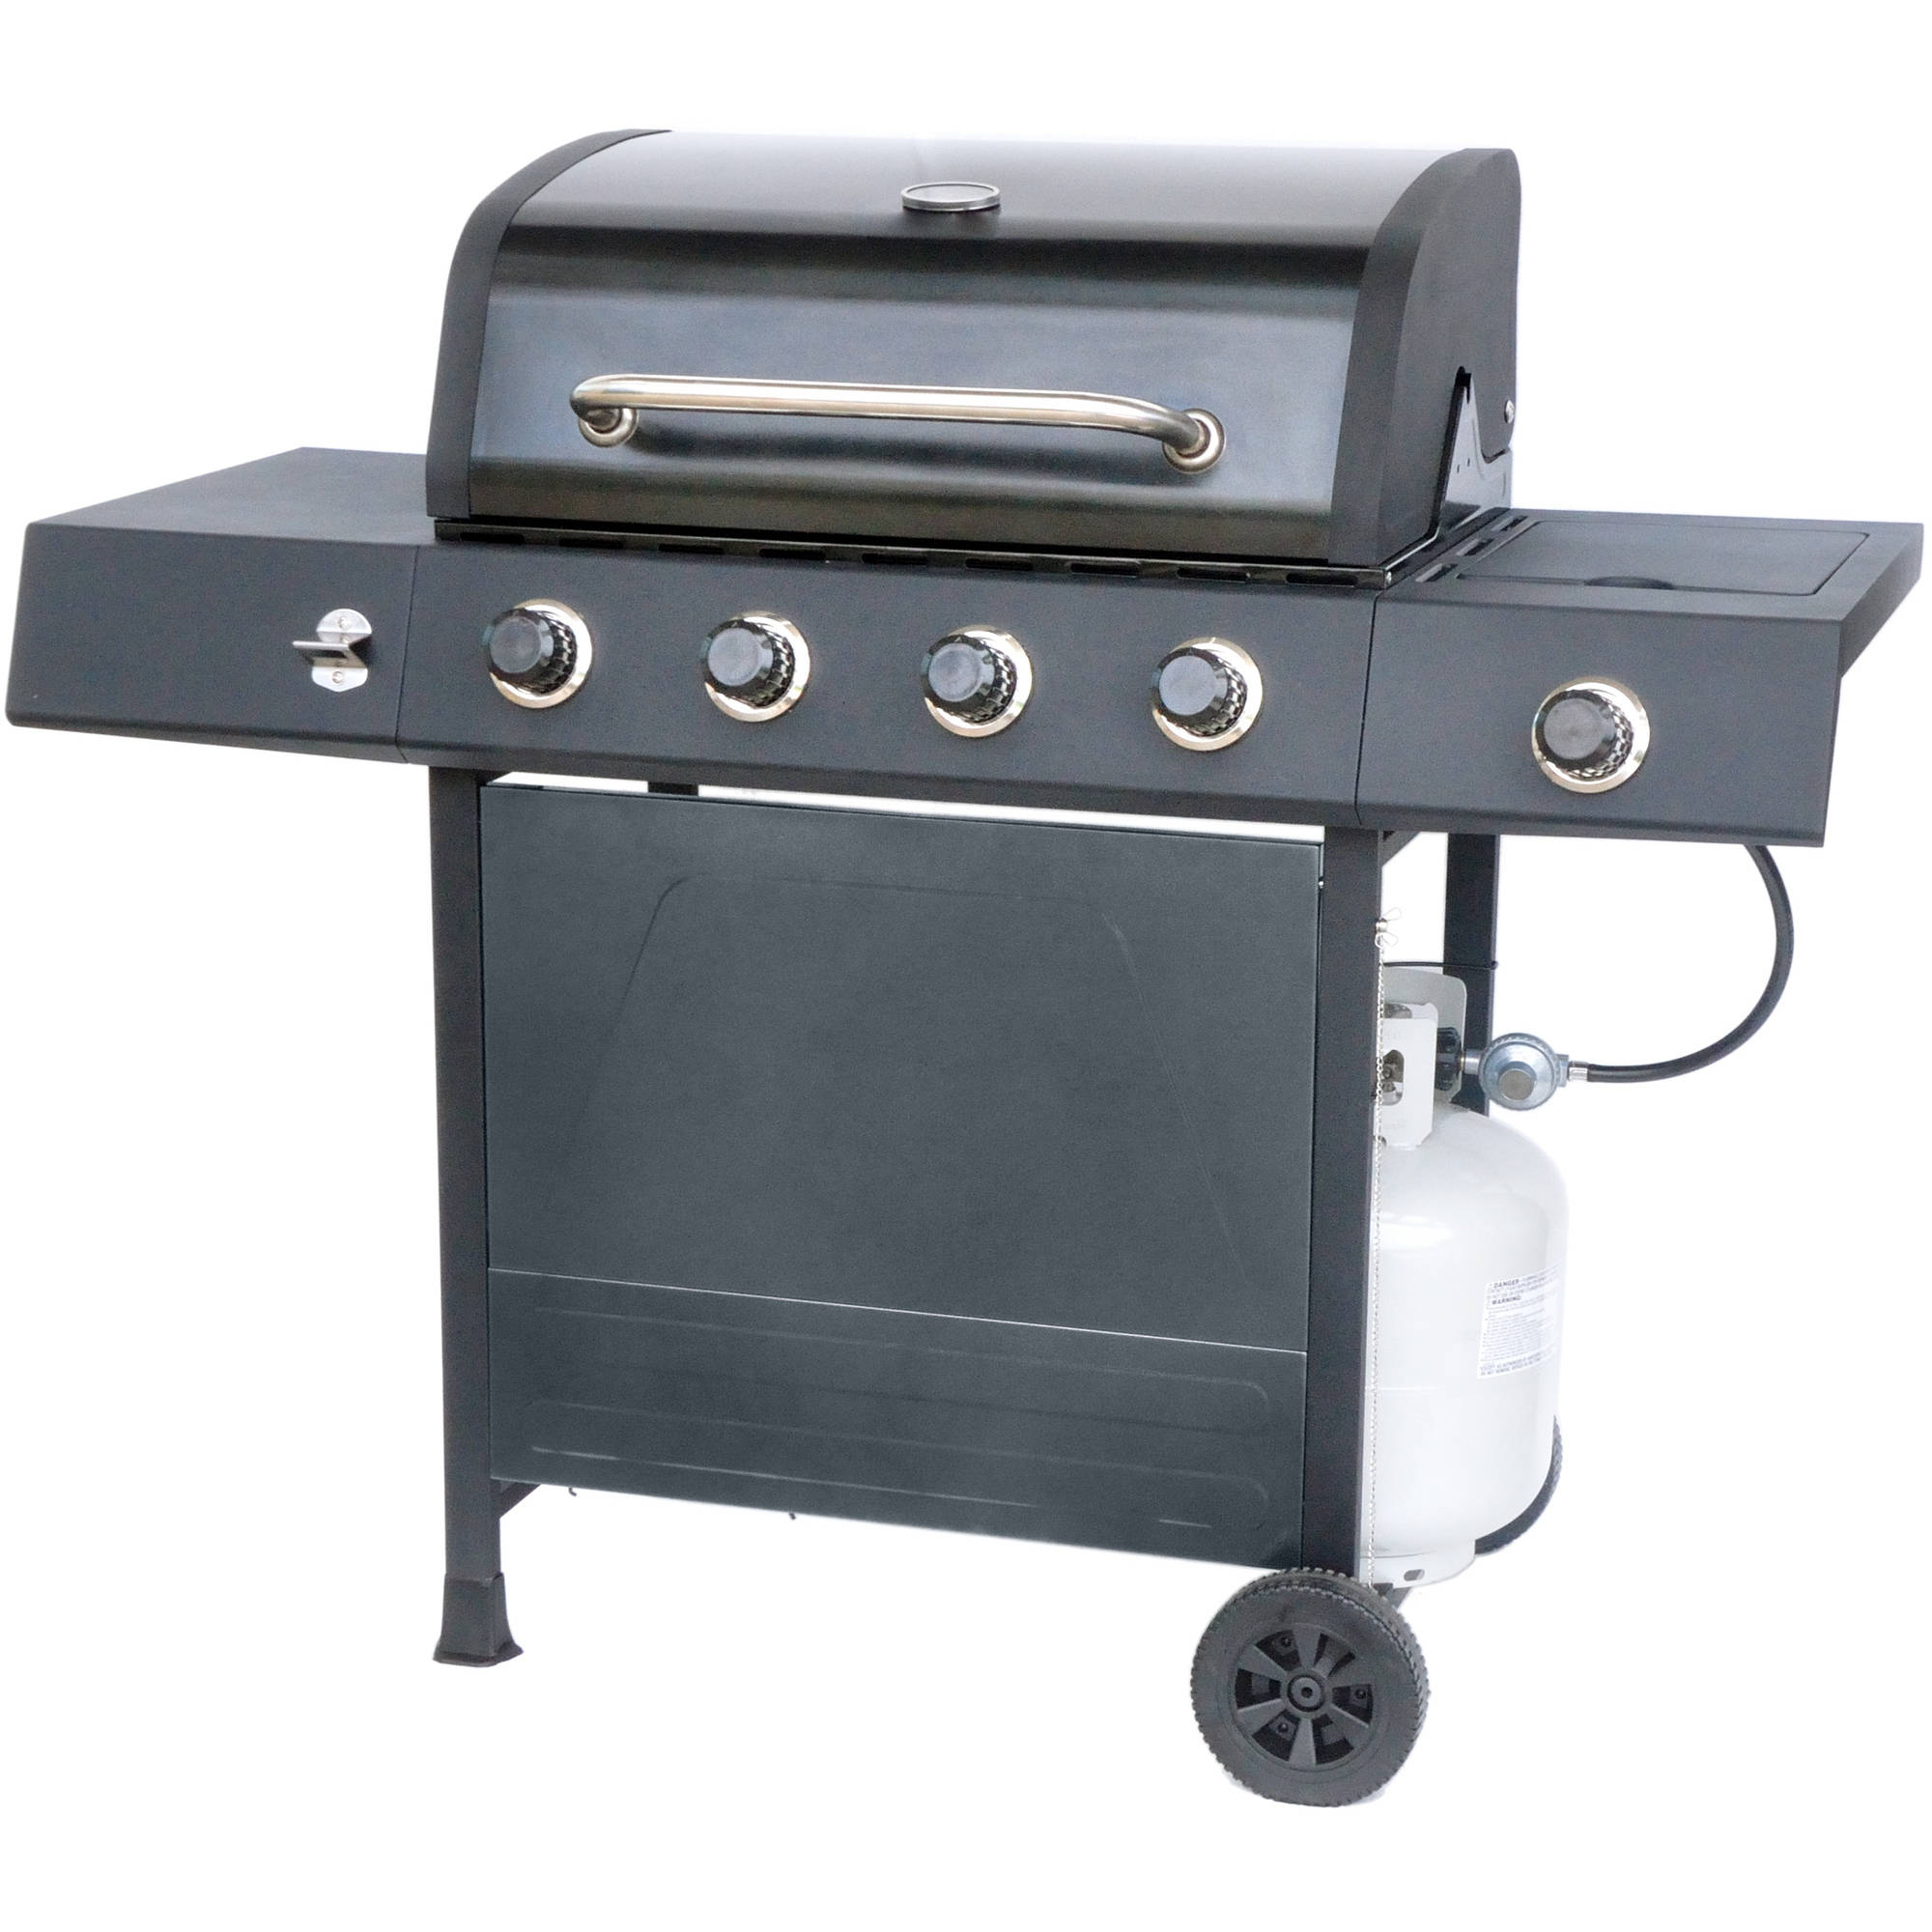 Can An Lp Grill Be Converted To Natural Gas